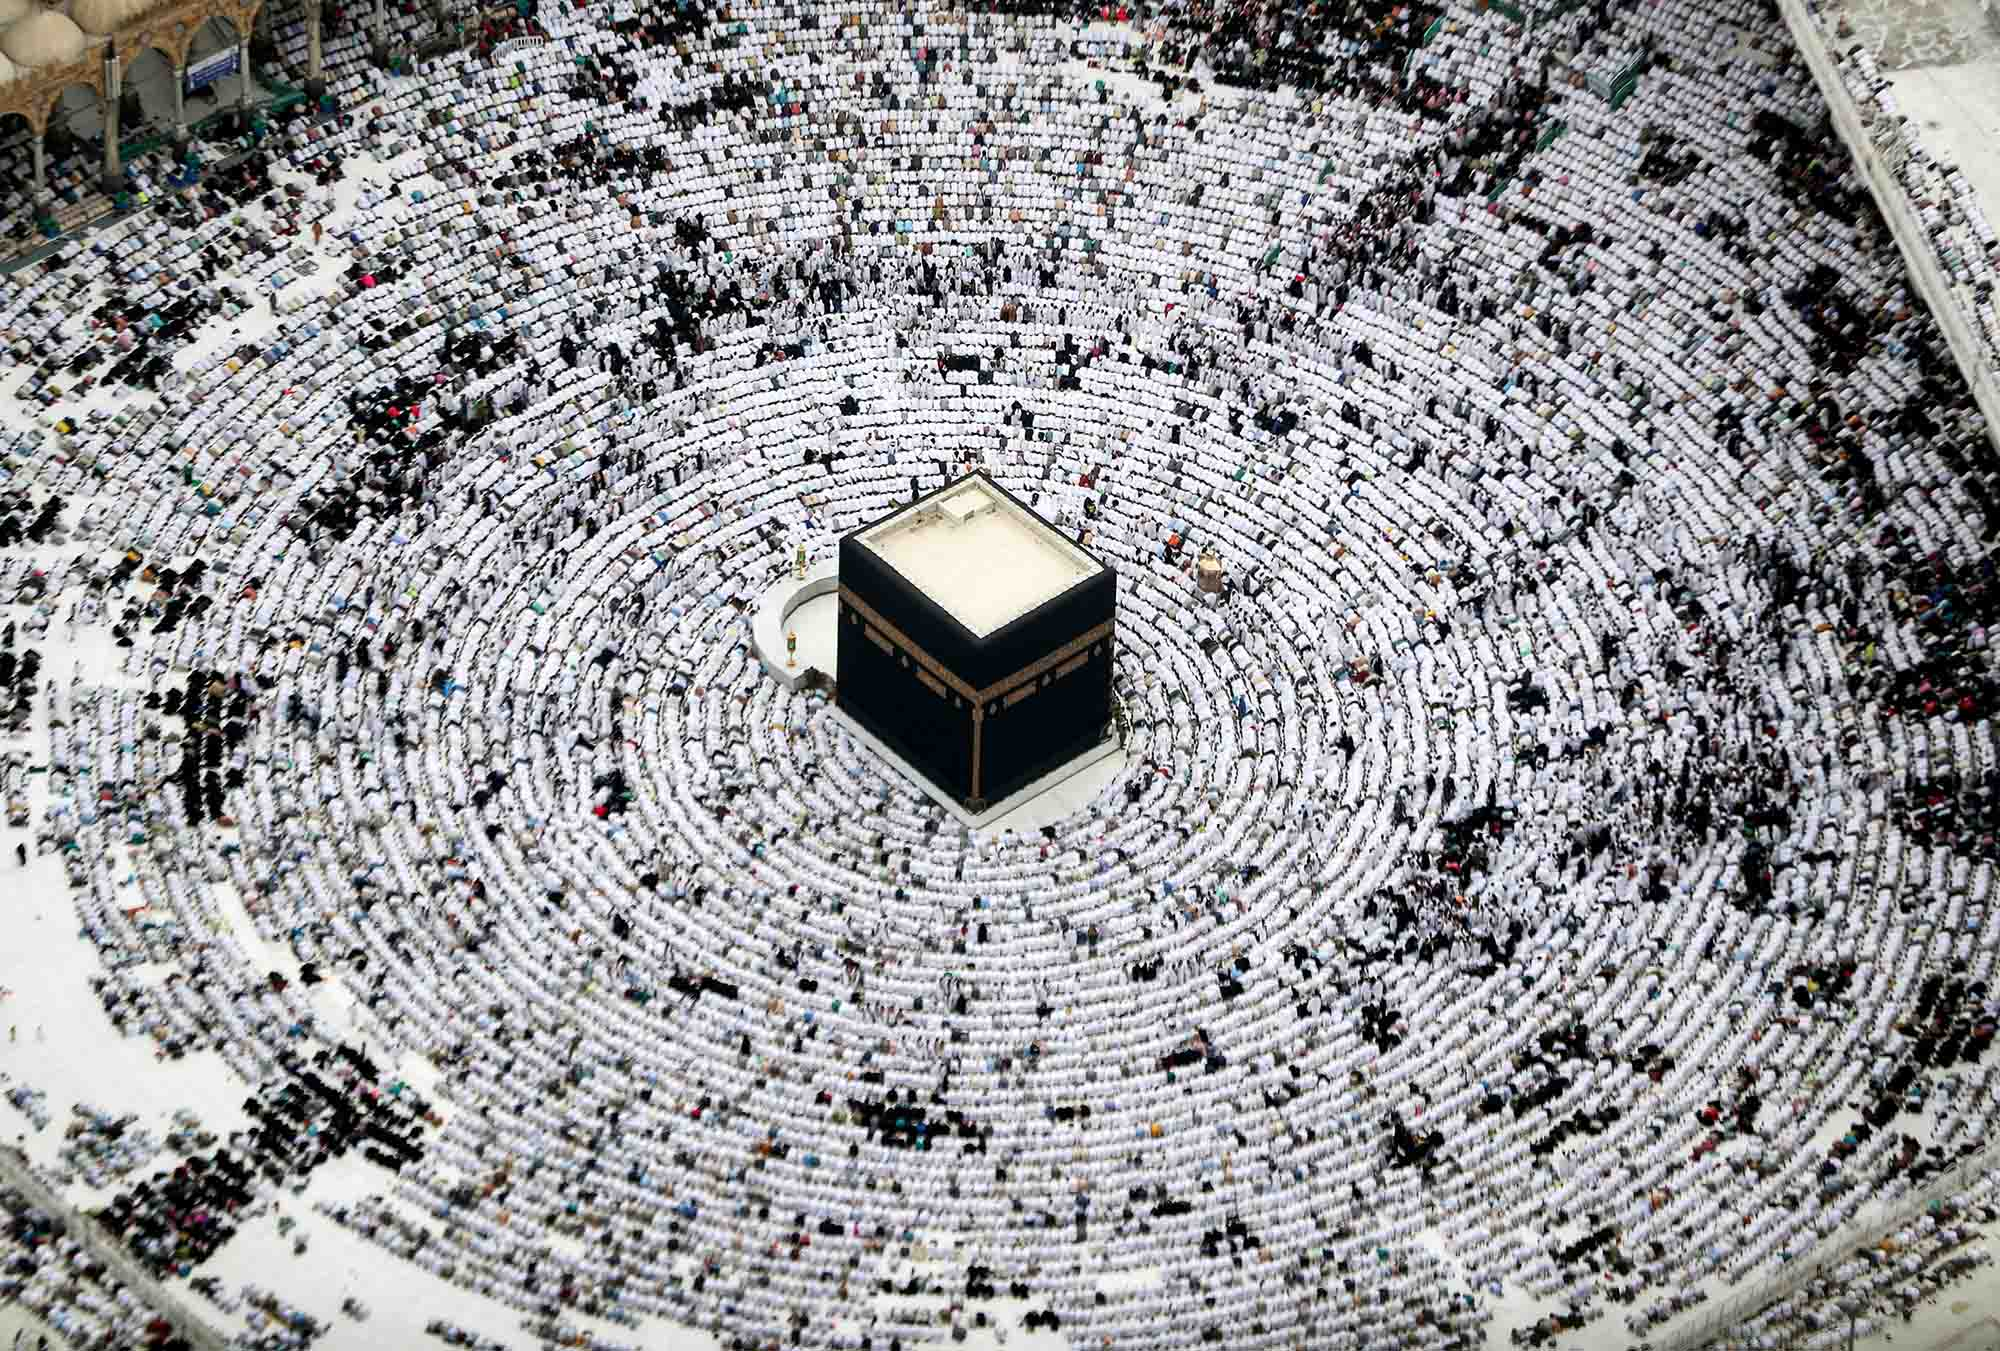 5 Dramatic Highlights of #Hajj2019: